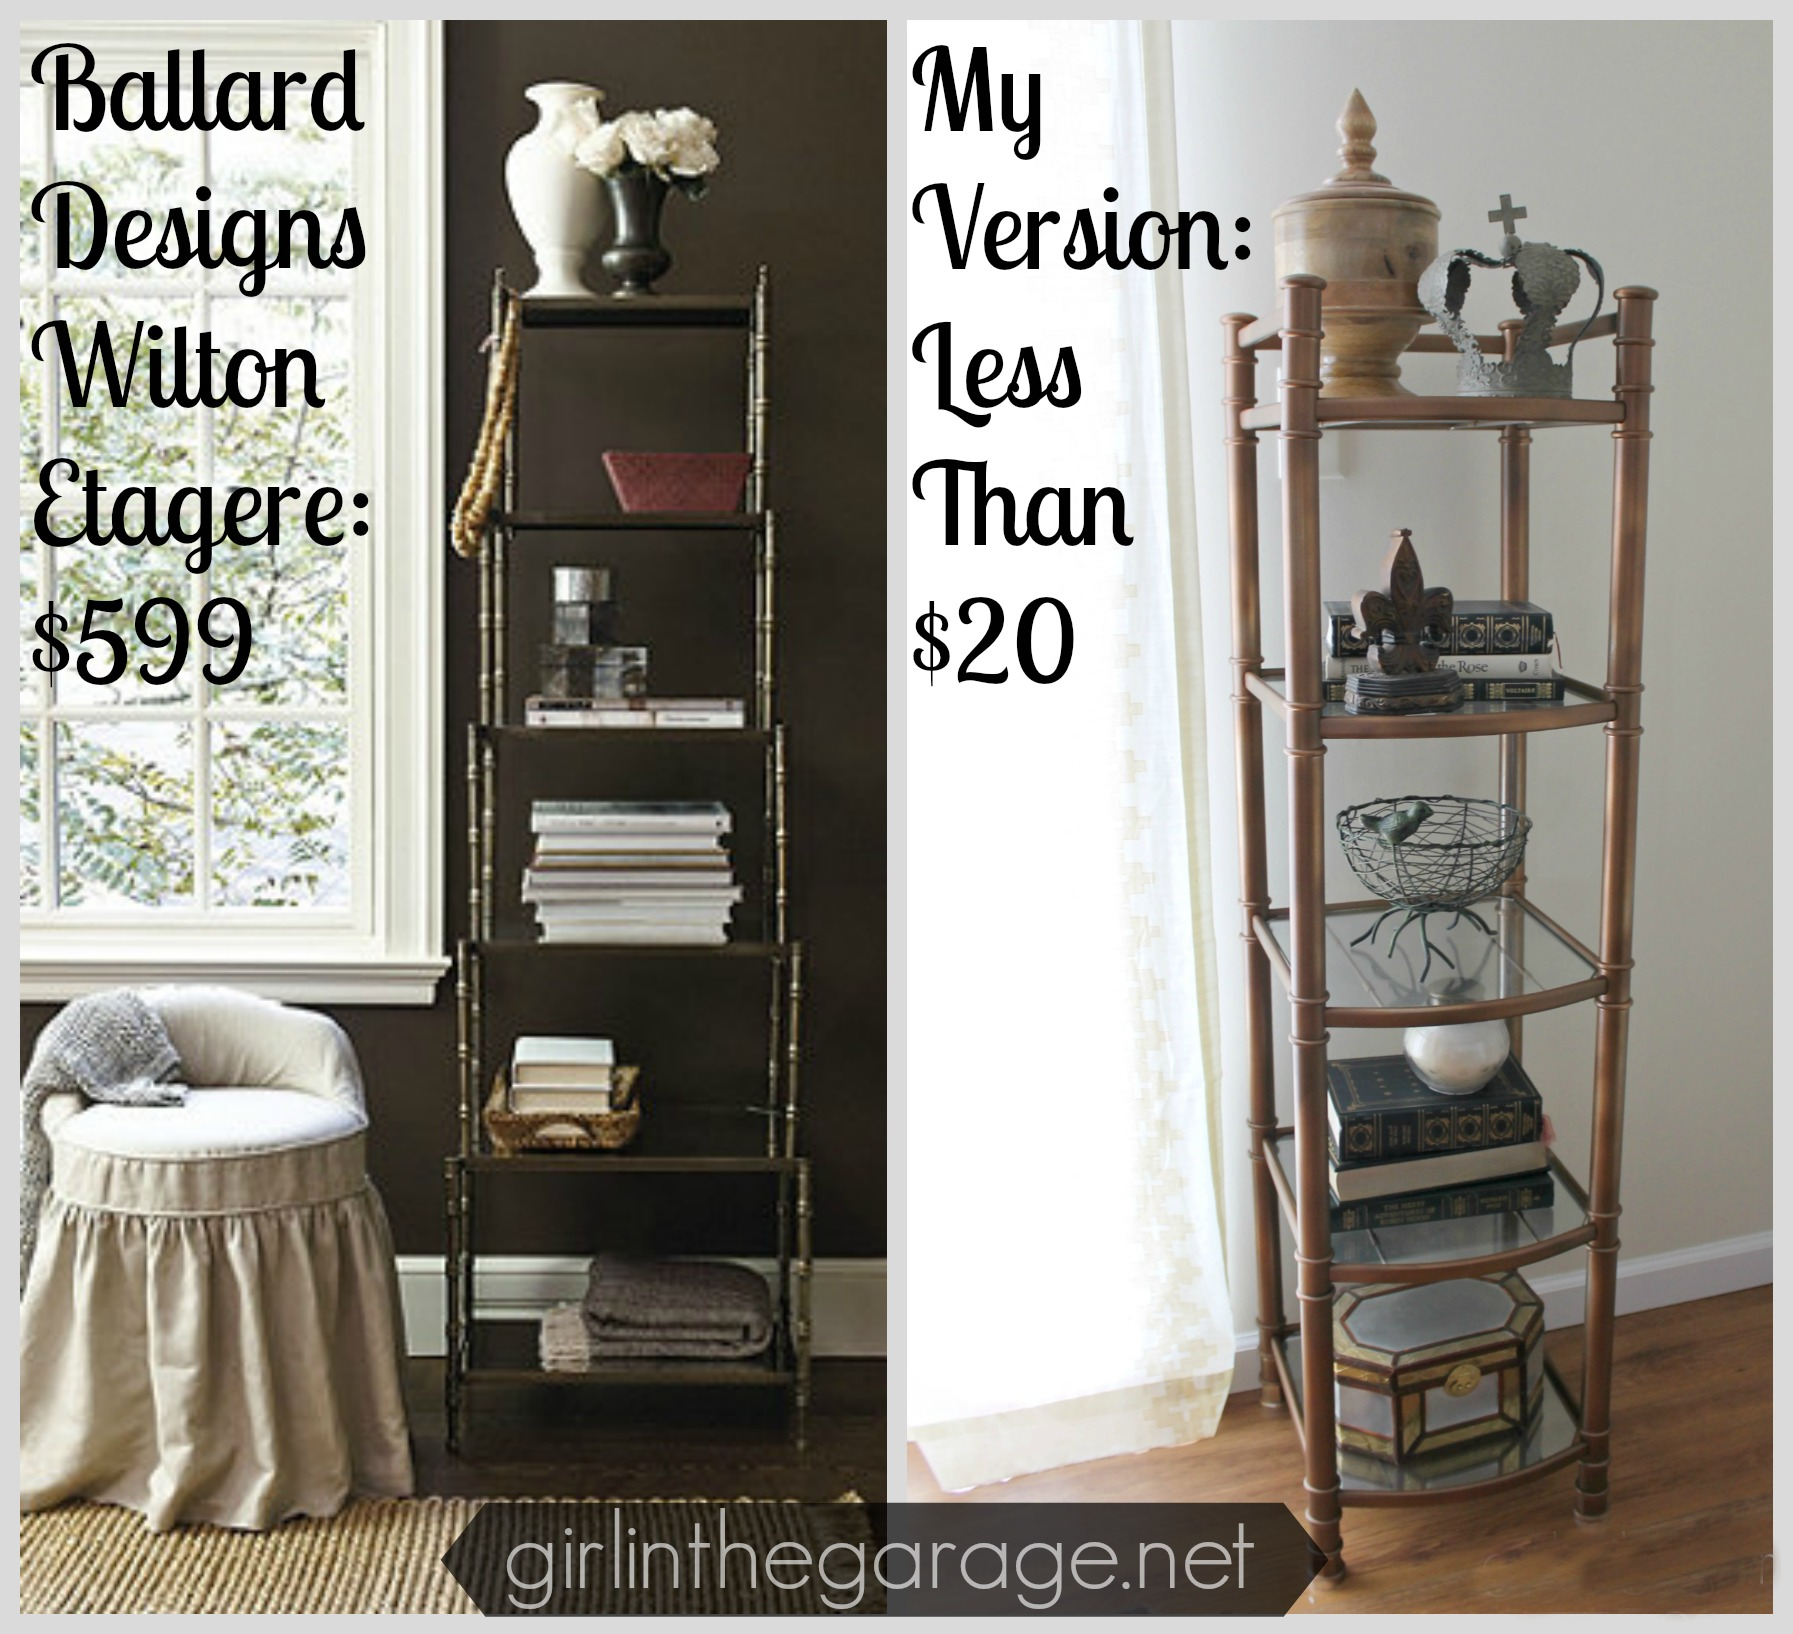 ballard design promo code free 28 stores similar to ballard designs free shipping coupons ballard designs